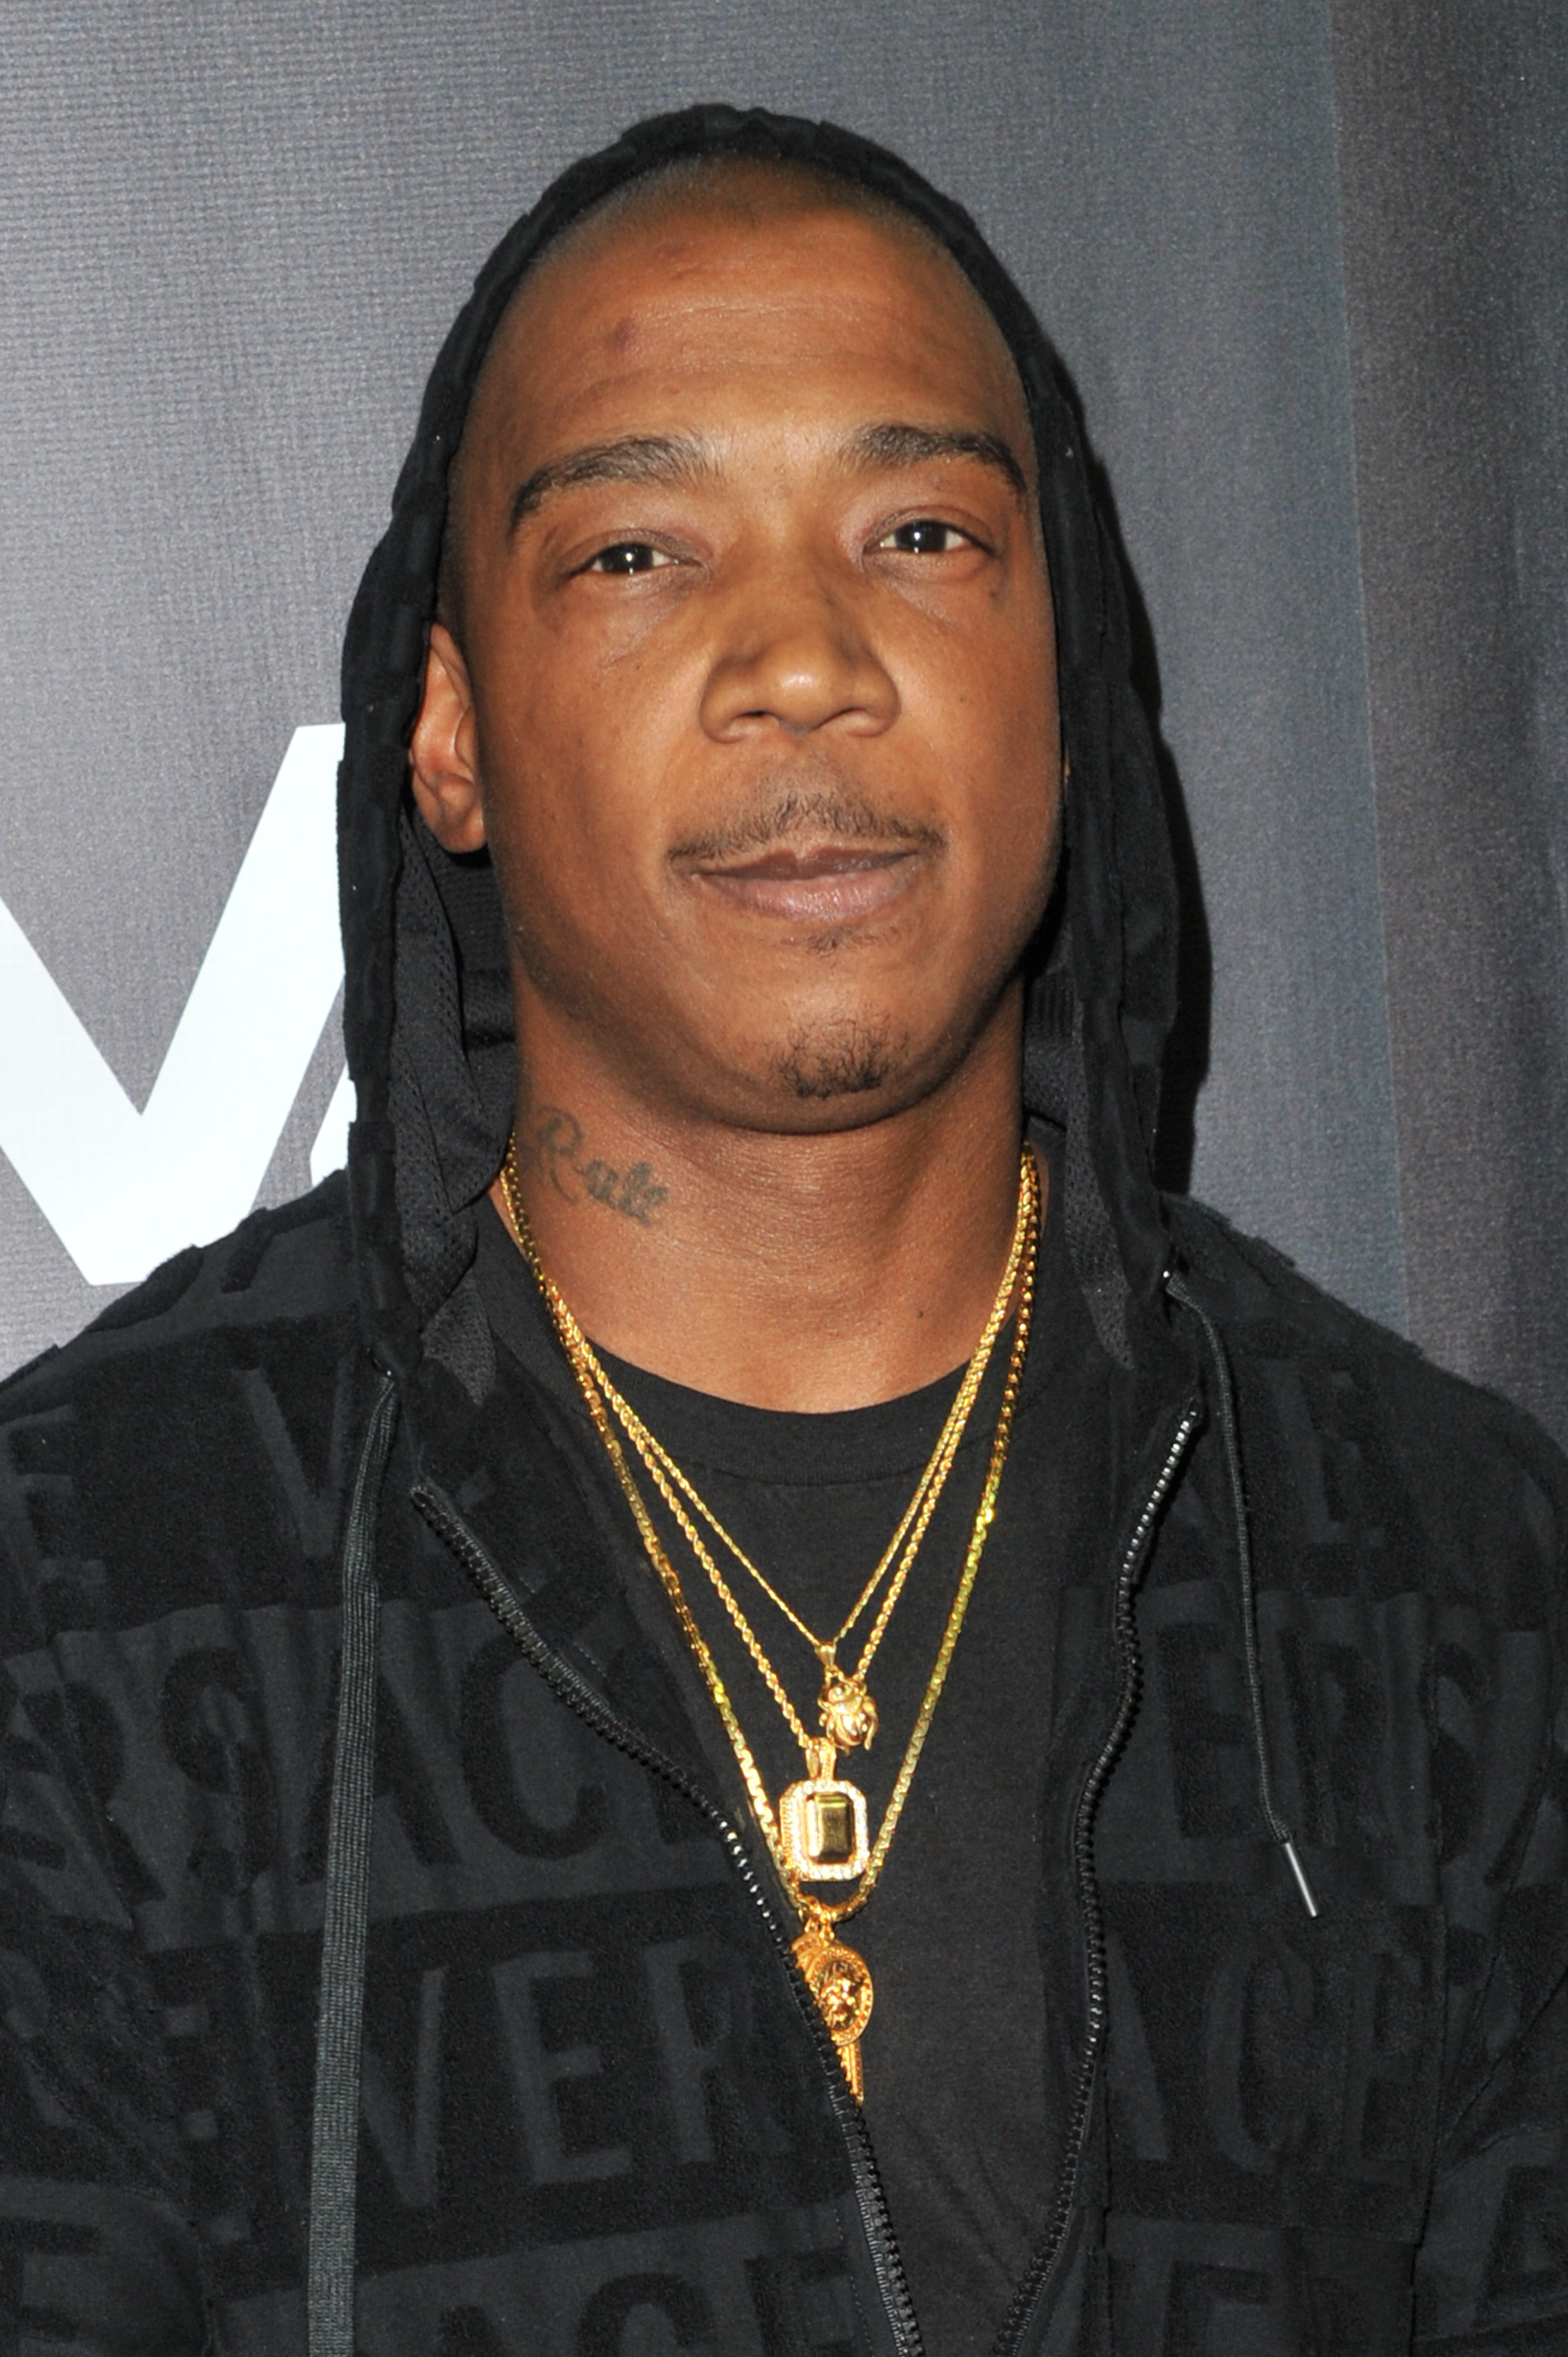 Ja Rule Cleared In Fyre Festival Fraud Lawsuit--Judge Believes He Very Well Could Have Been 'Hustled'